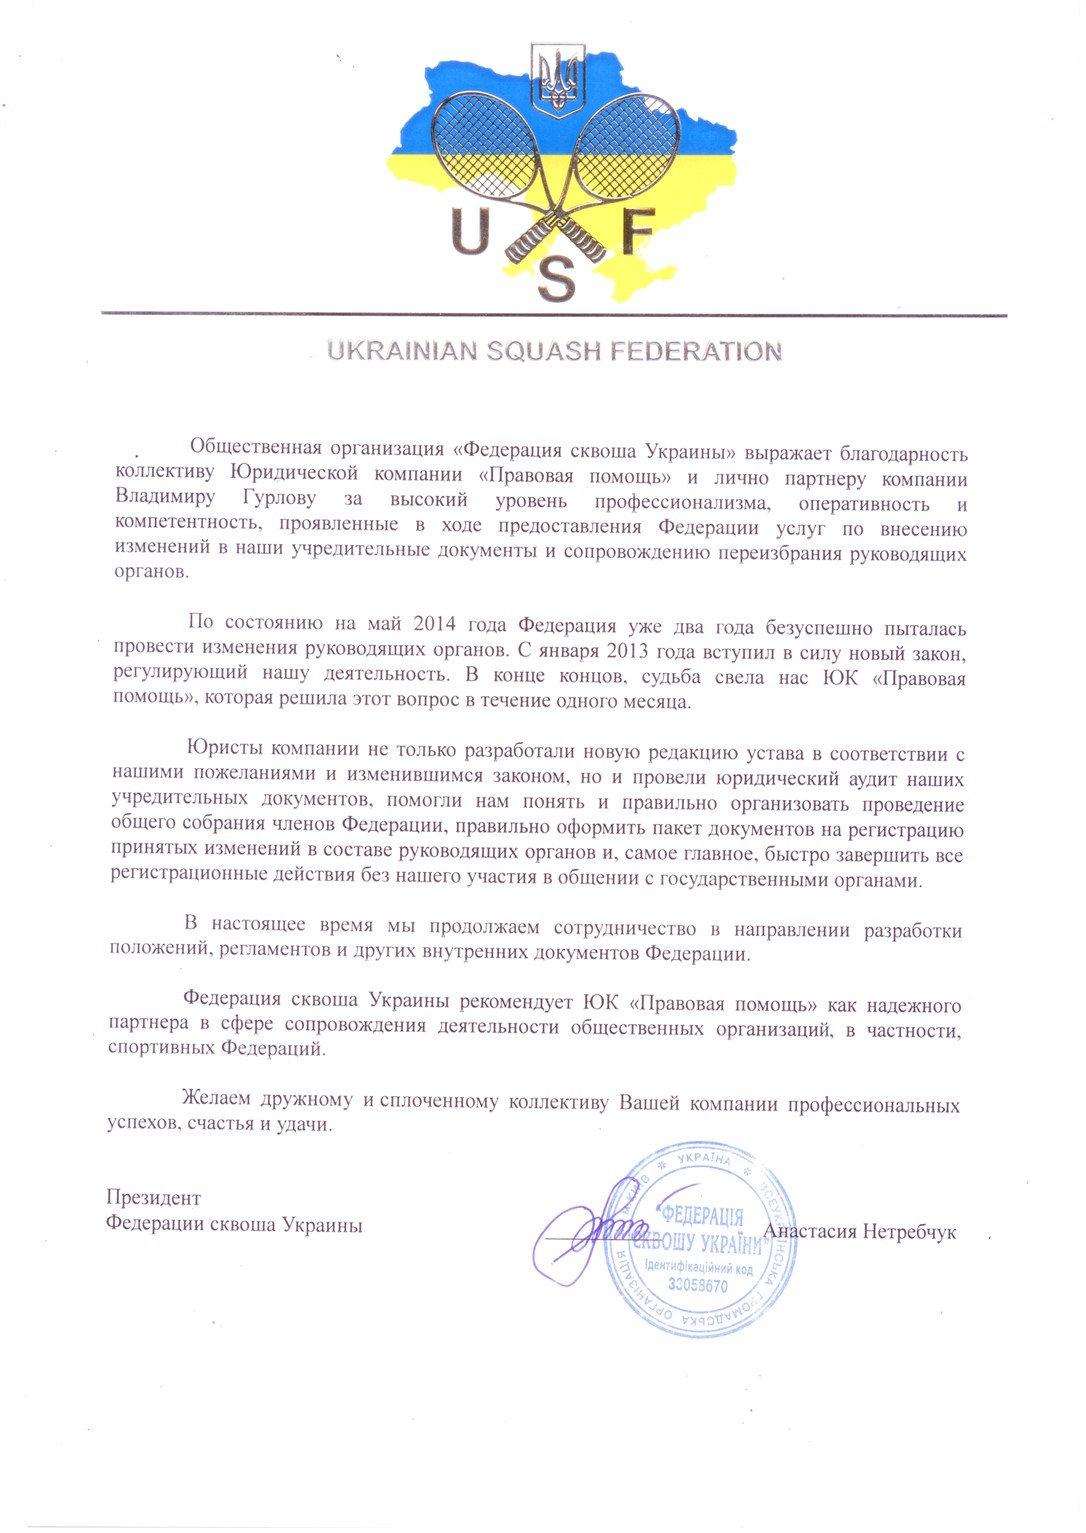 Receiving of official invitation letter for obtainment of president a netrebchuk ukrainian squash federation stopboris Choice Image